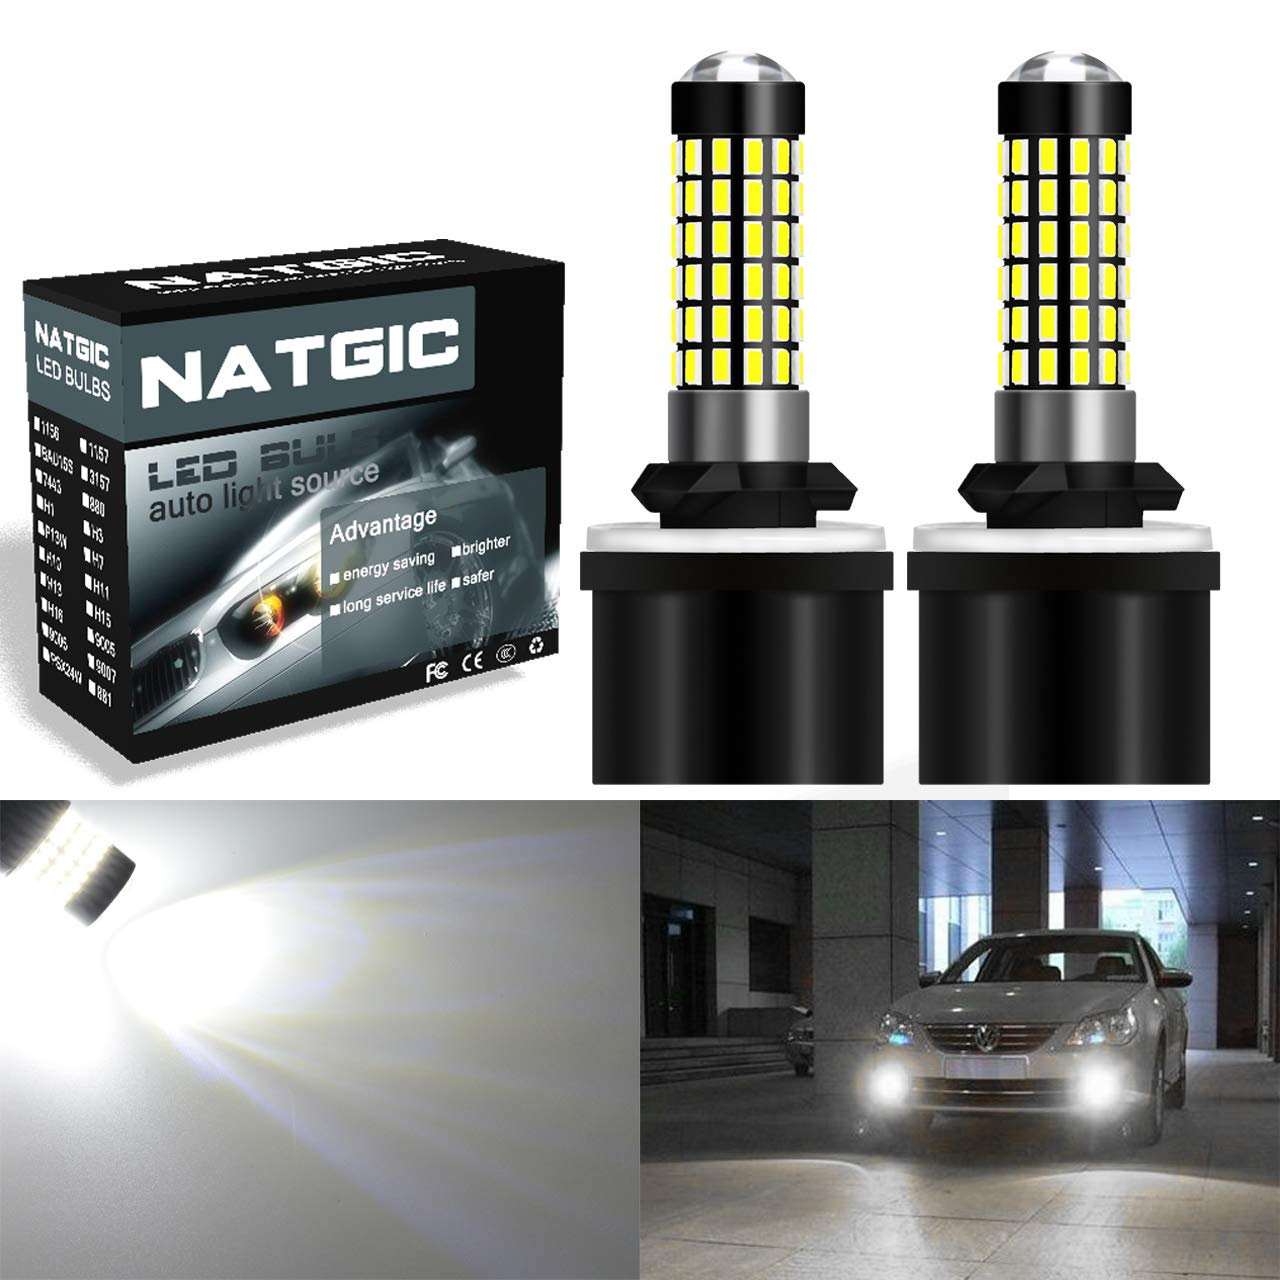 NGCAT 2PCS 900 Lumens 3014SMD 78-EX Chipsets H1 LED Bulbs with Lens Projector Used for Fog Light Daytime Running Light Automotive Driving Lamp, Xenon White 6500K, 12-24V